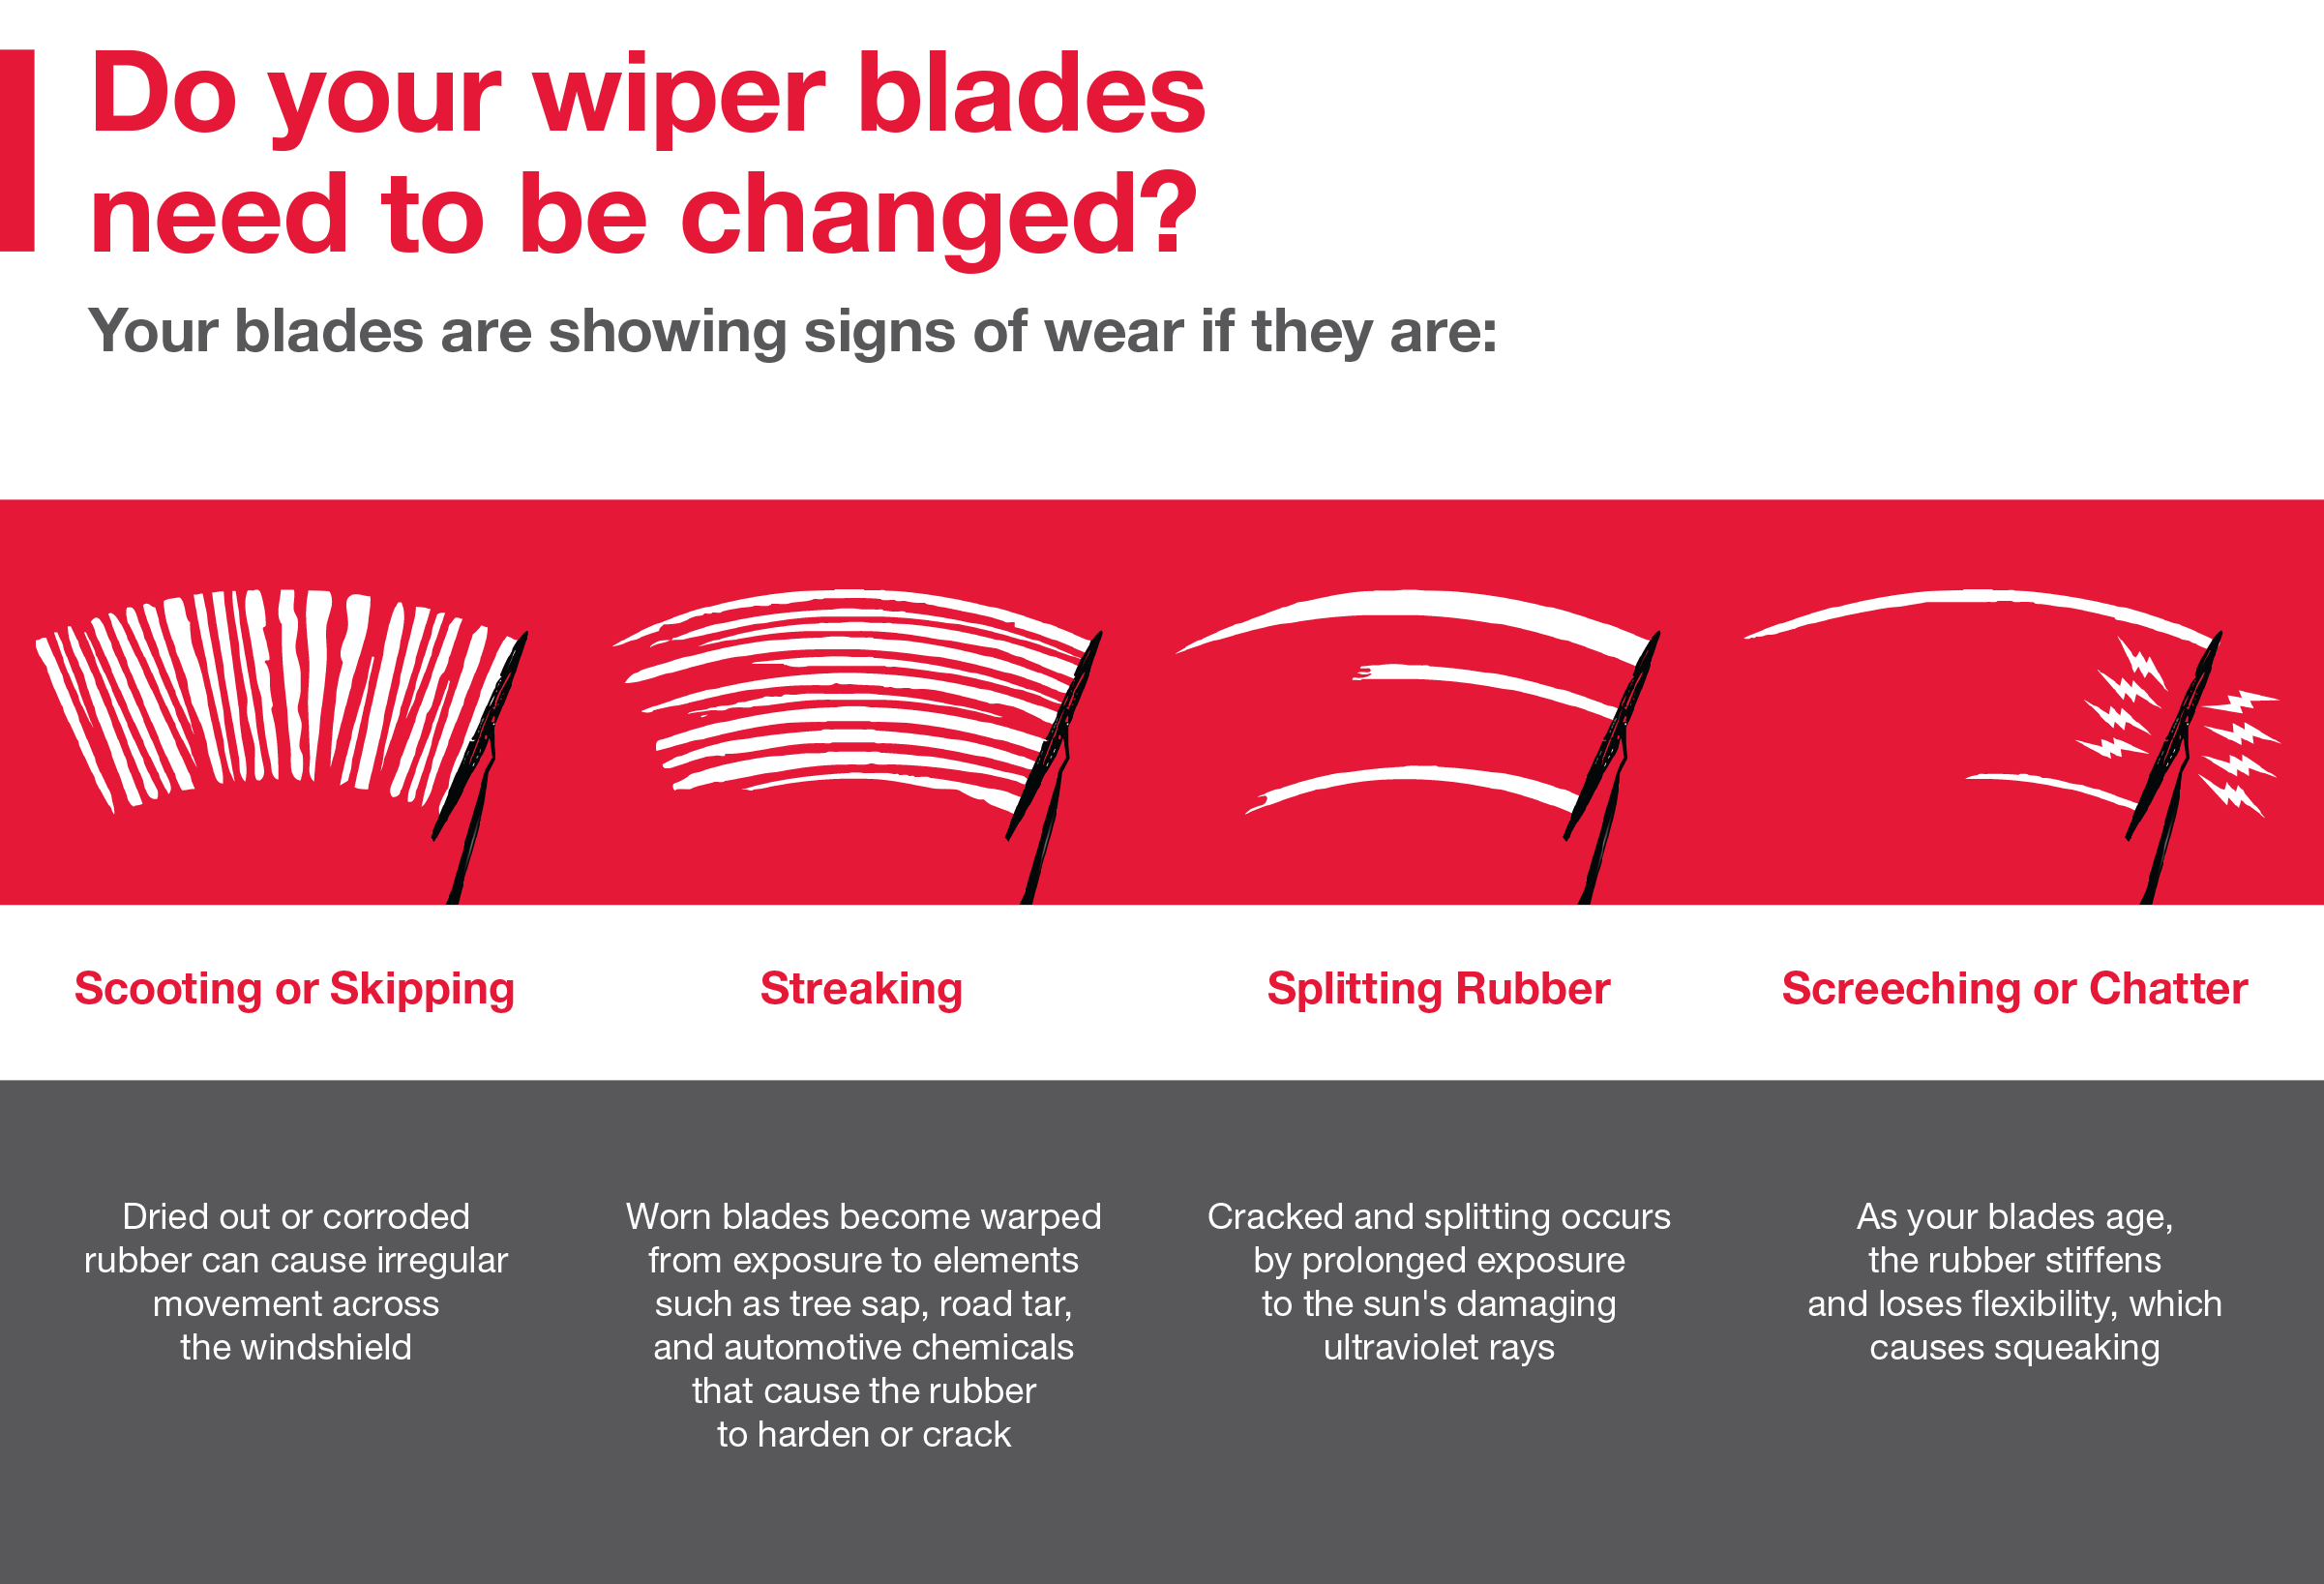 Do your wiper blades need to be changed? Call your local dealer for more info